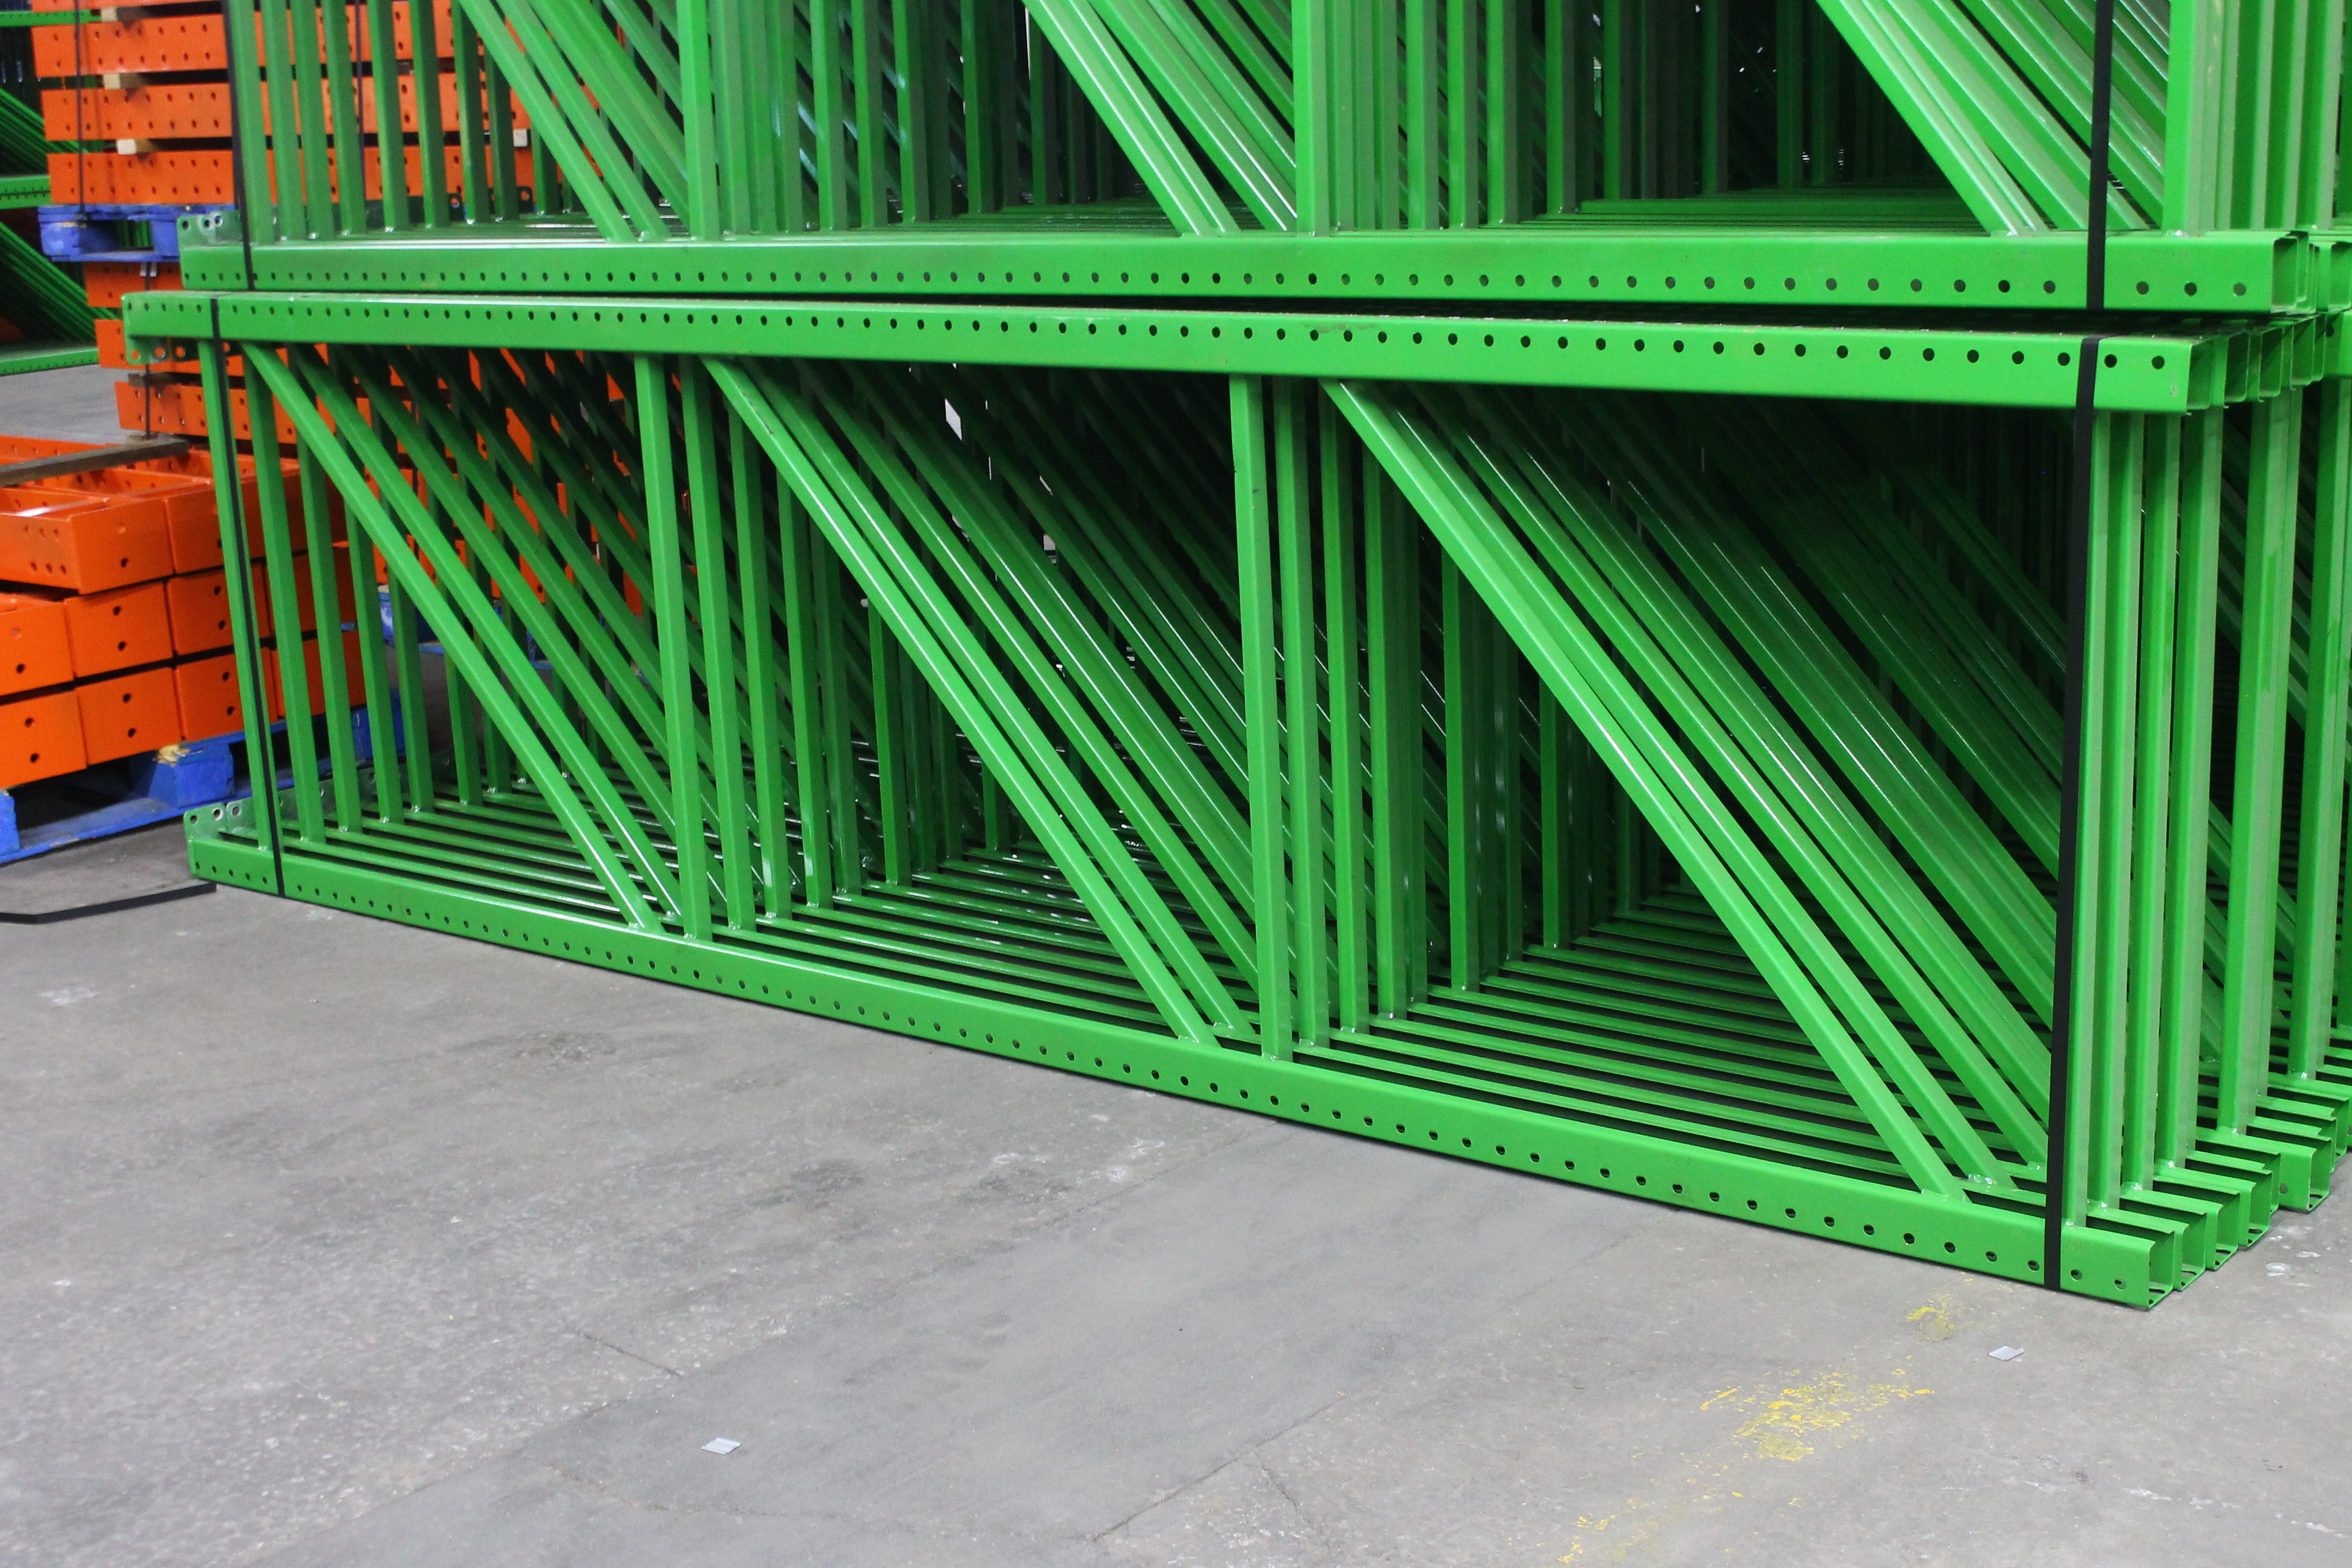 """NEW 60 PCS OF TEARDROP UPRIGHT. SIZE 12'H X 42""""D, 3""""X 3"""" GREEN - Image 3 of 3"""